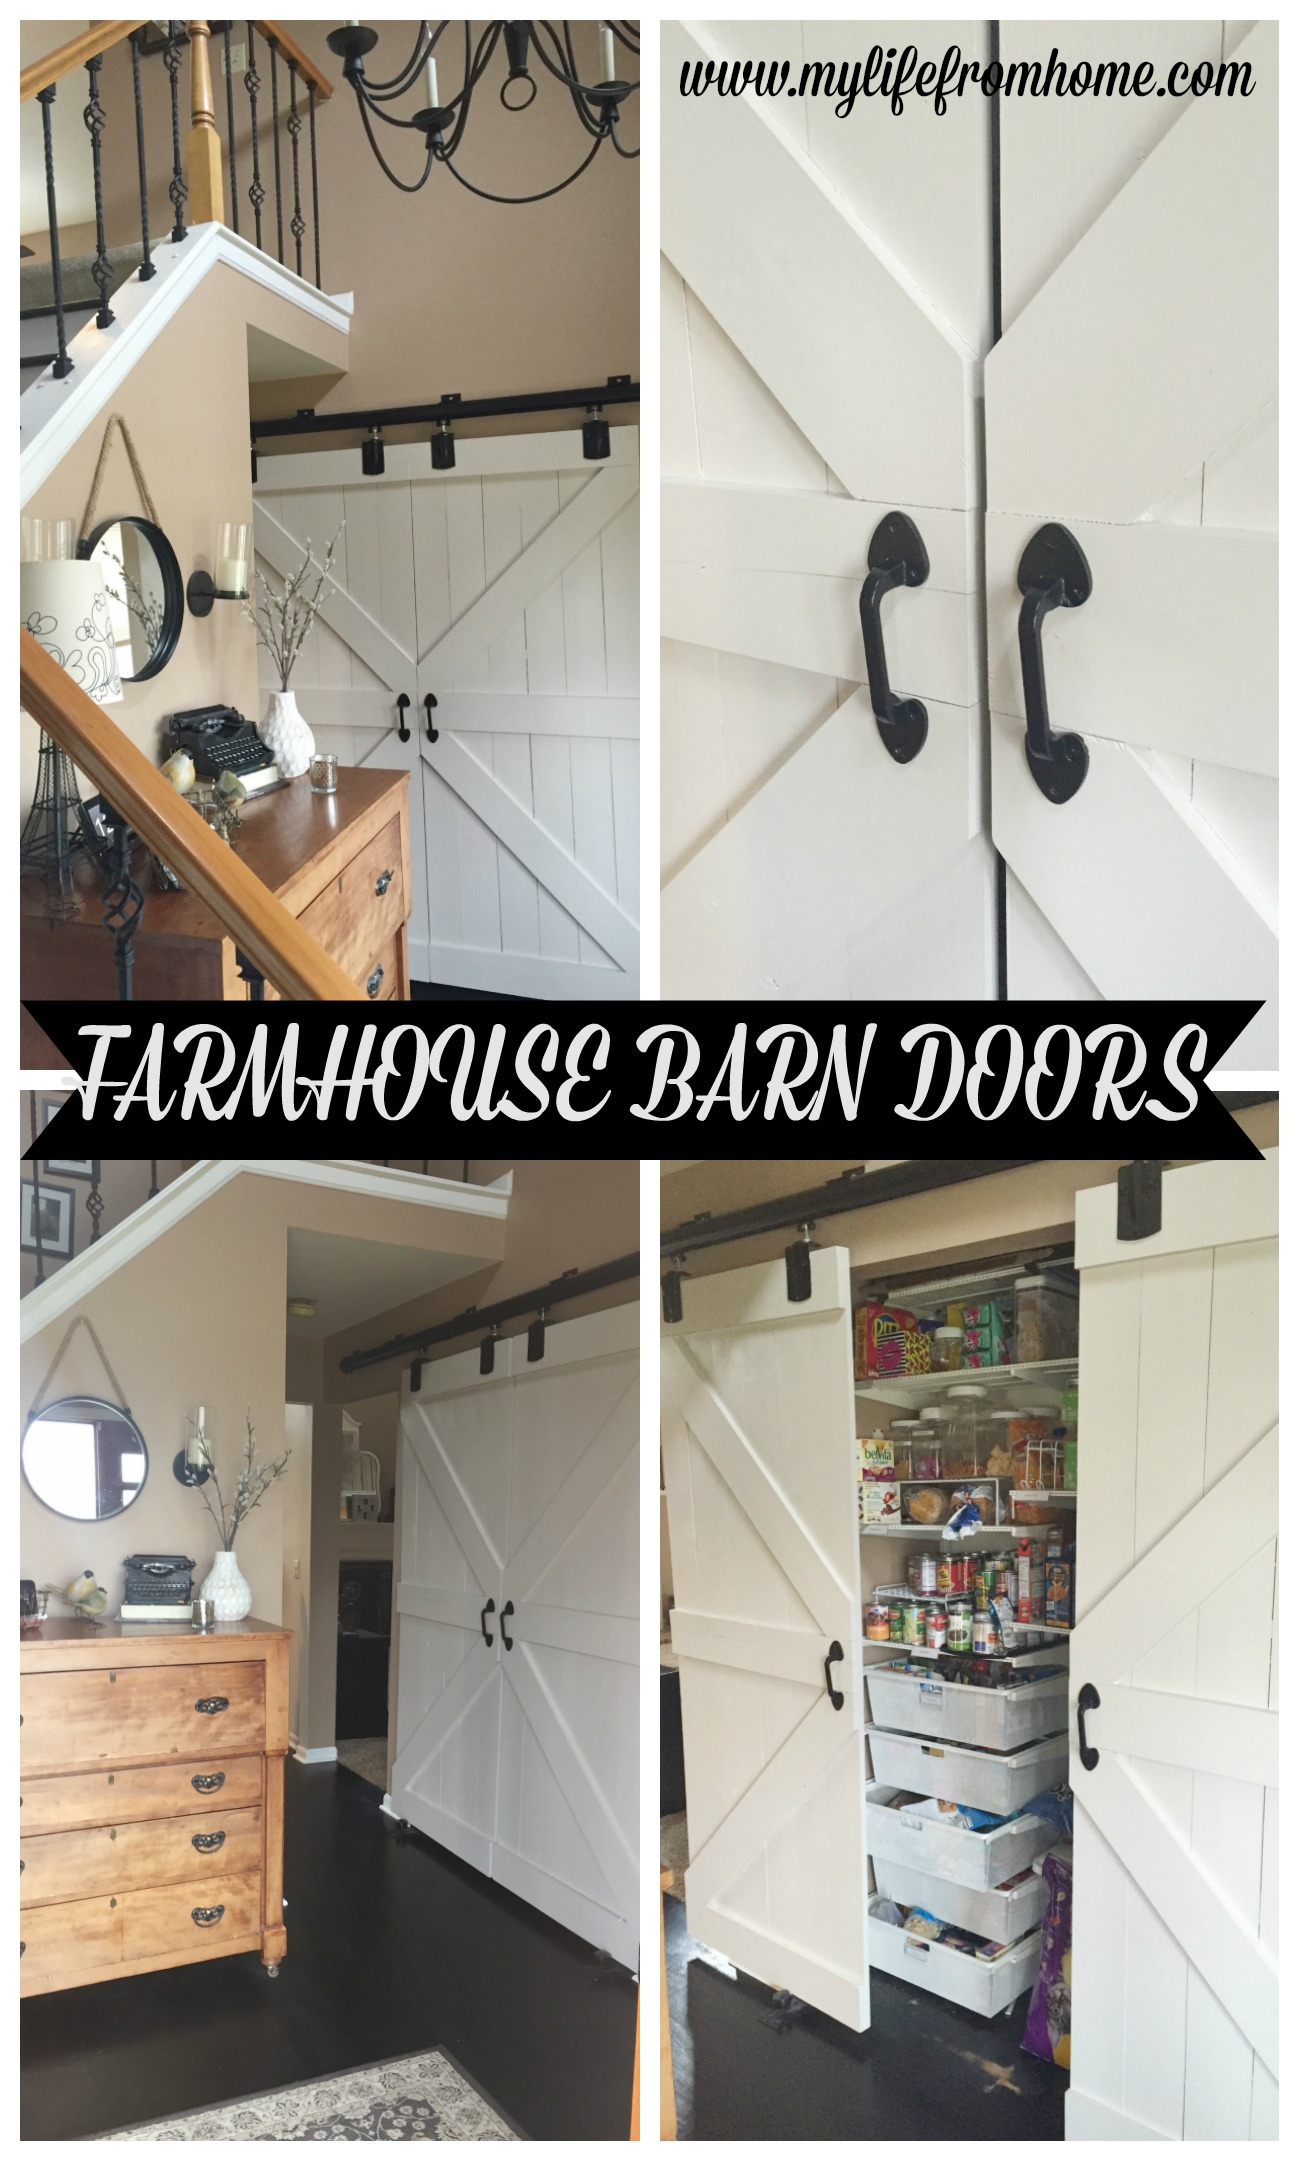 Farmhouse Barn Doors by www.mylifefromhome.com